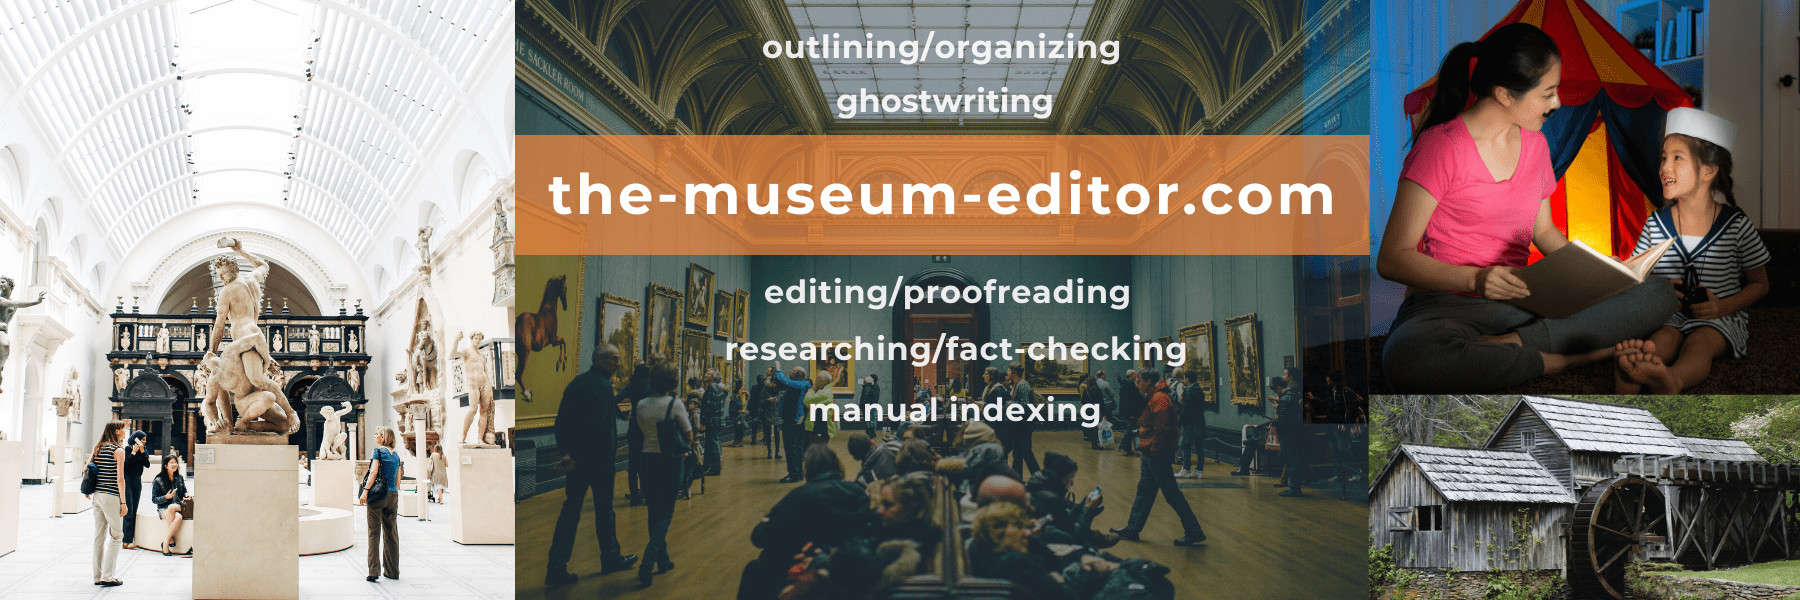 Thank you for visiting the-museum-editor, a division of the-freelance-editor, for help with museum-related outlining/organizing, ghostwriting, editing/proofreading, researching/fact-checking, and manual indexing.